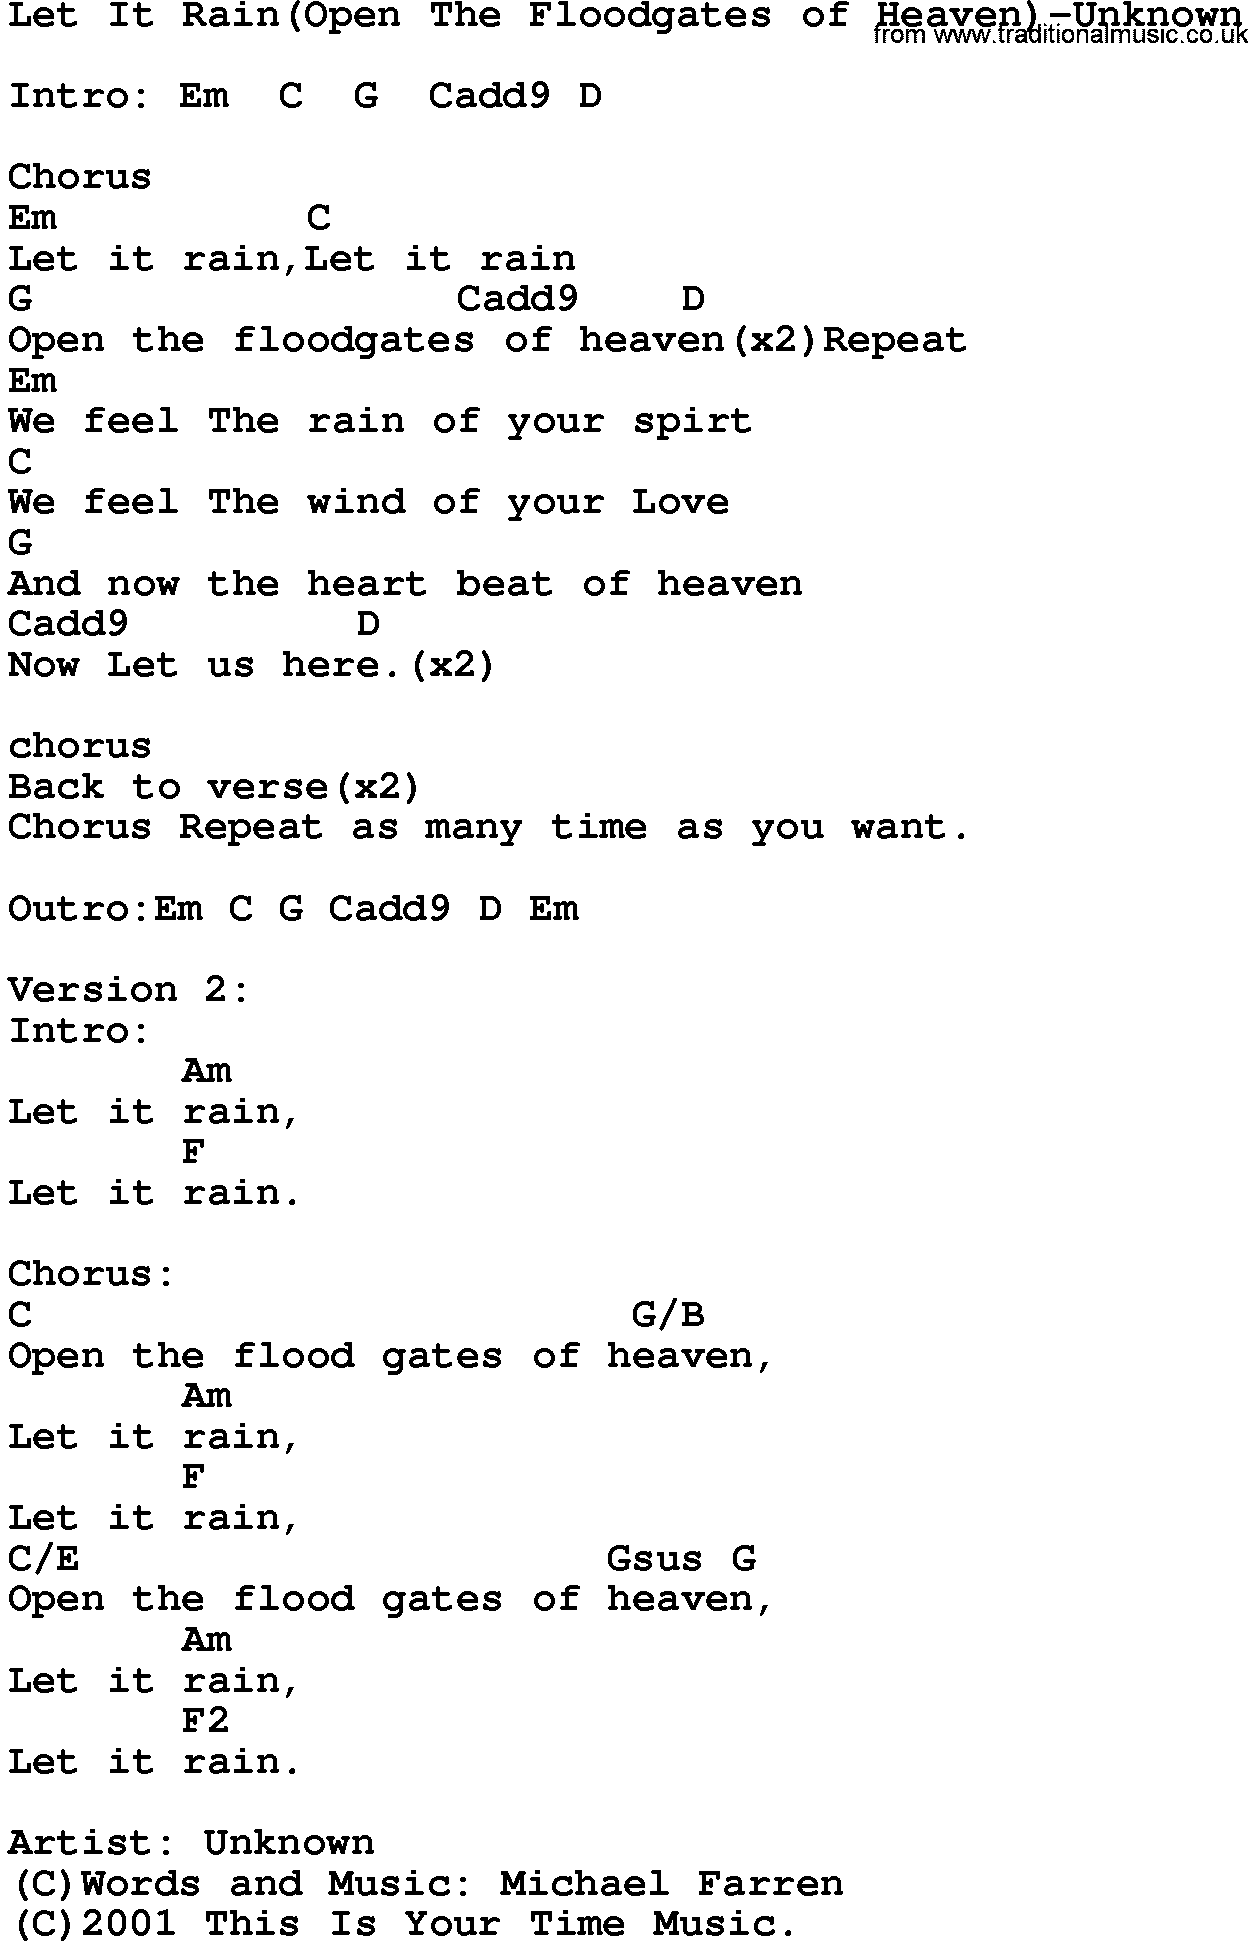 Open The Floodgates Of Heaven Chords Google Search